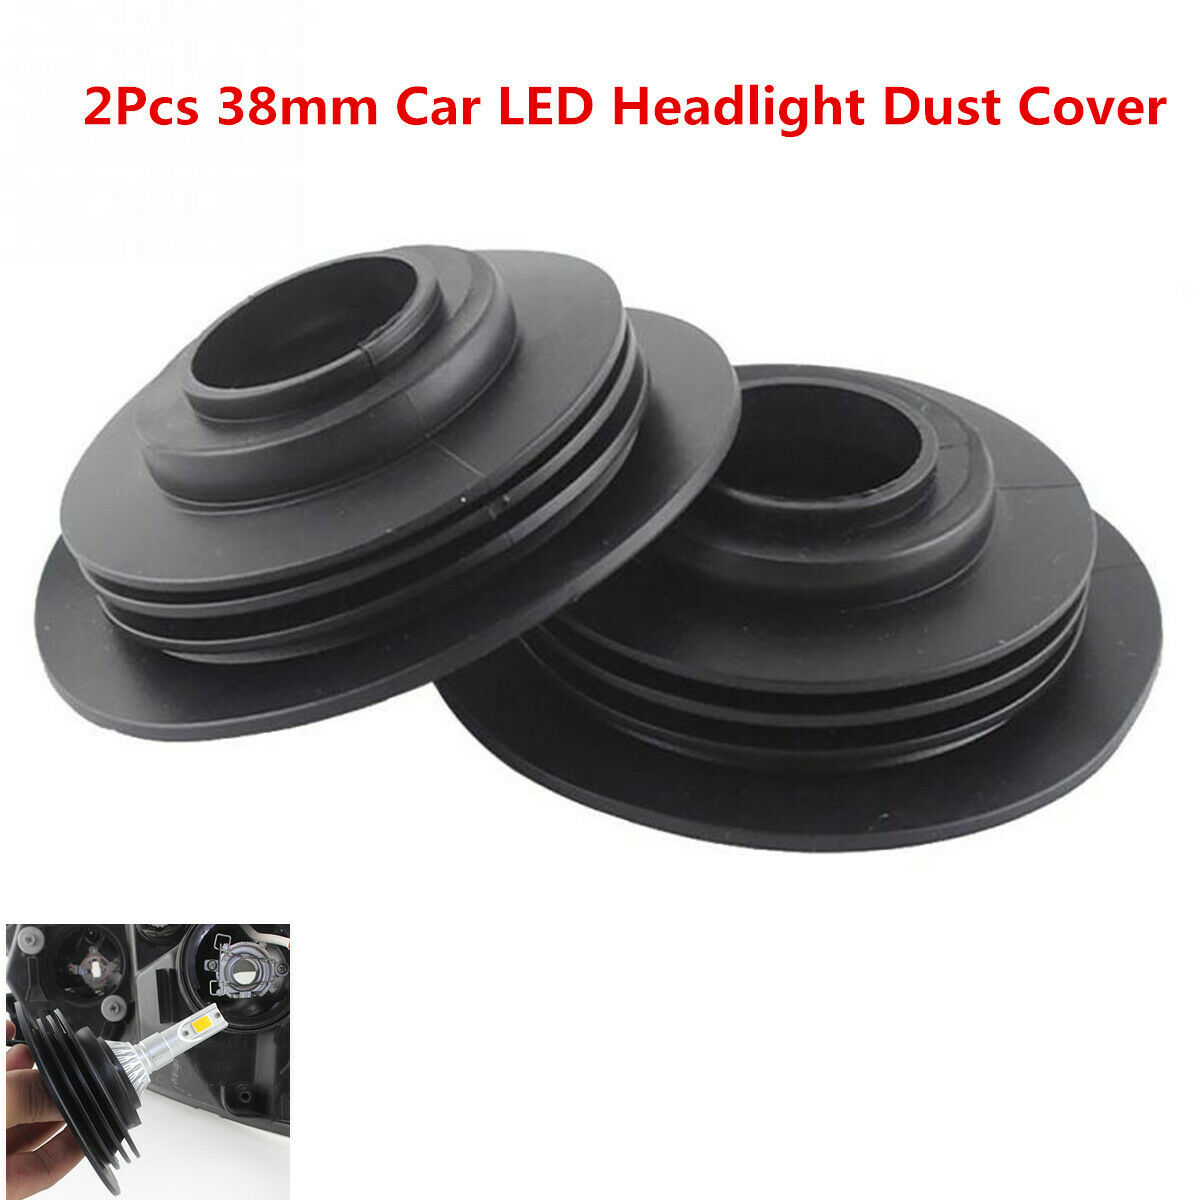 2Pcs Car Headlight  Rubber Waterproof Dust Cover Cap for LED Headlamp HID Lamp